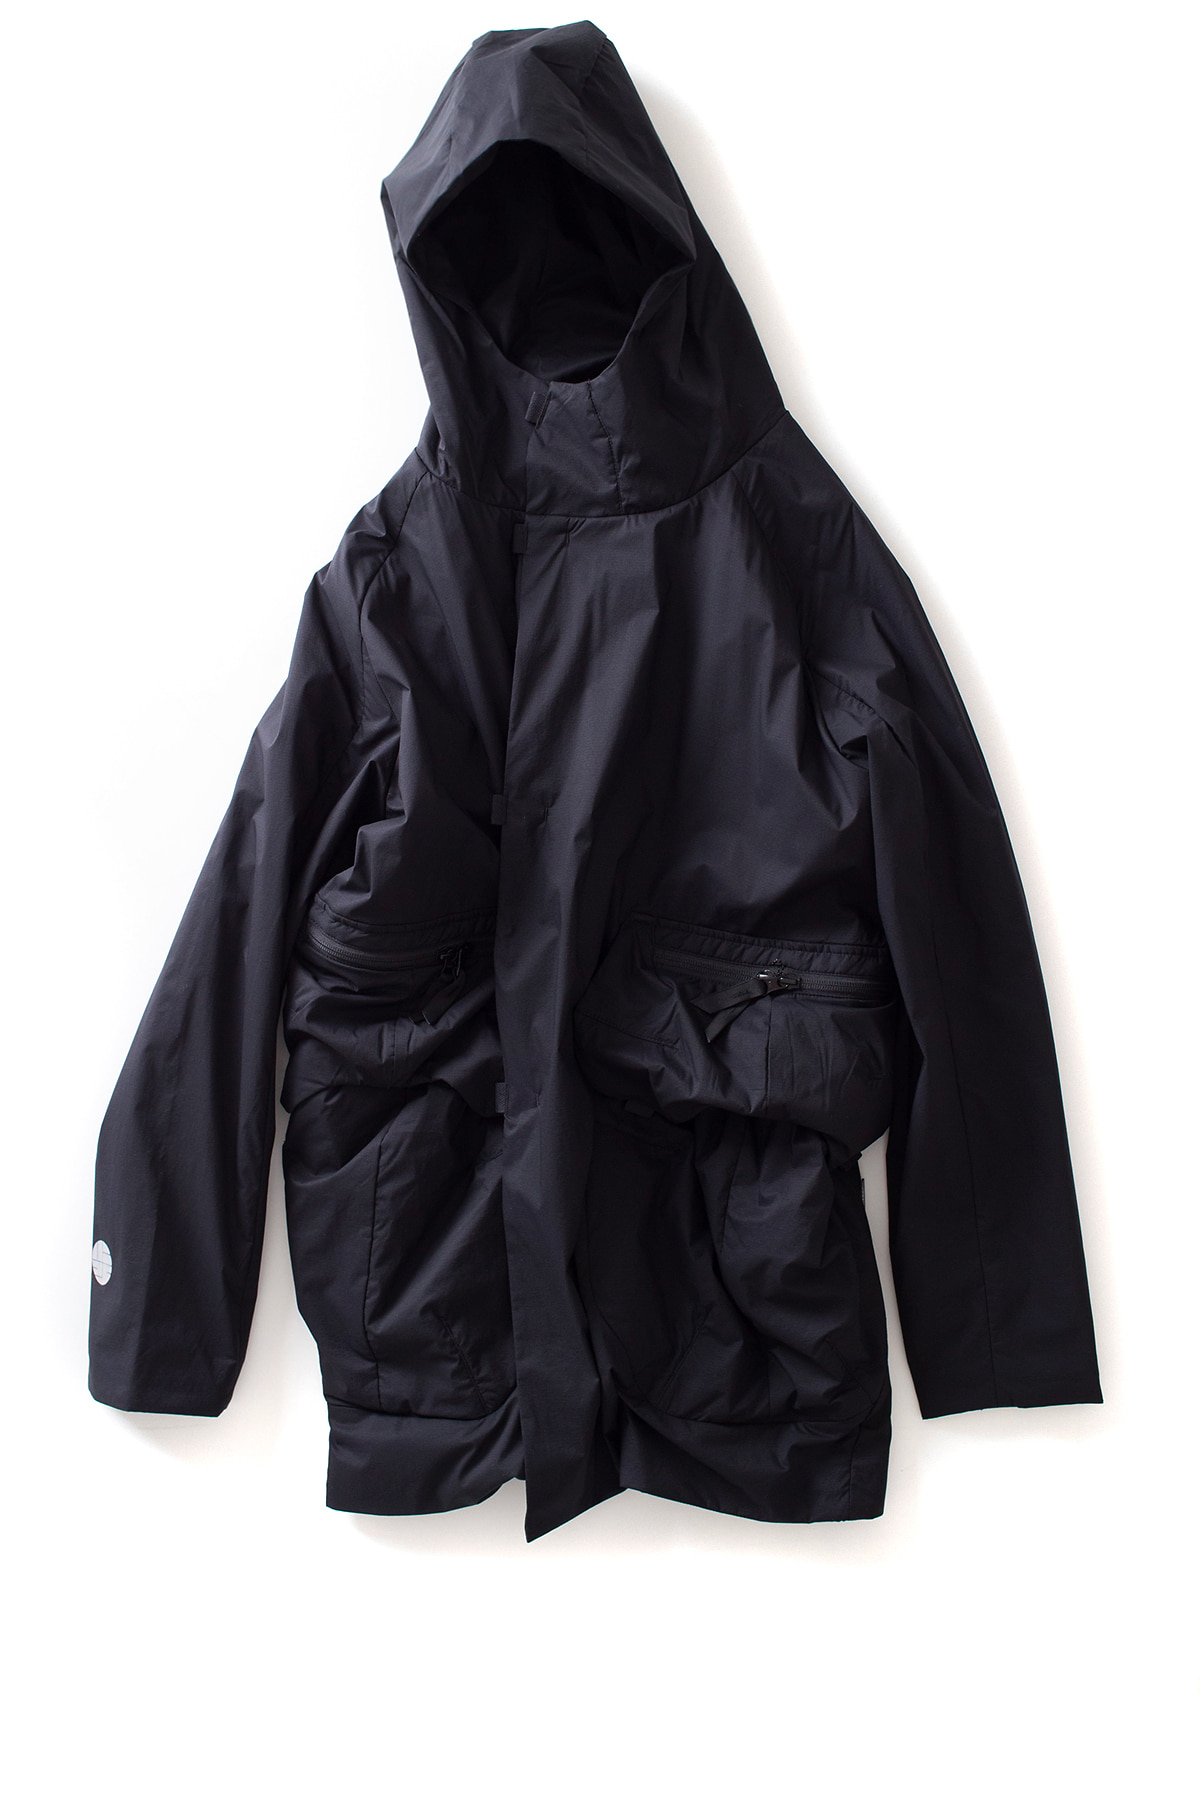 alk phenix : Zak Coat/ Hyper Stretch Light X α (Black)